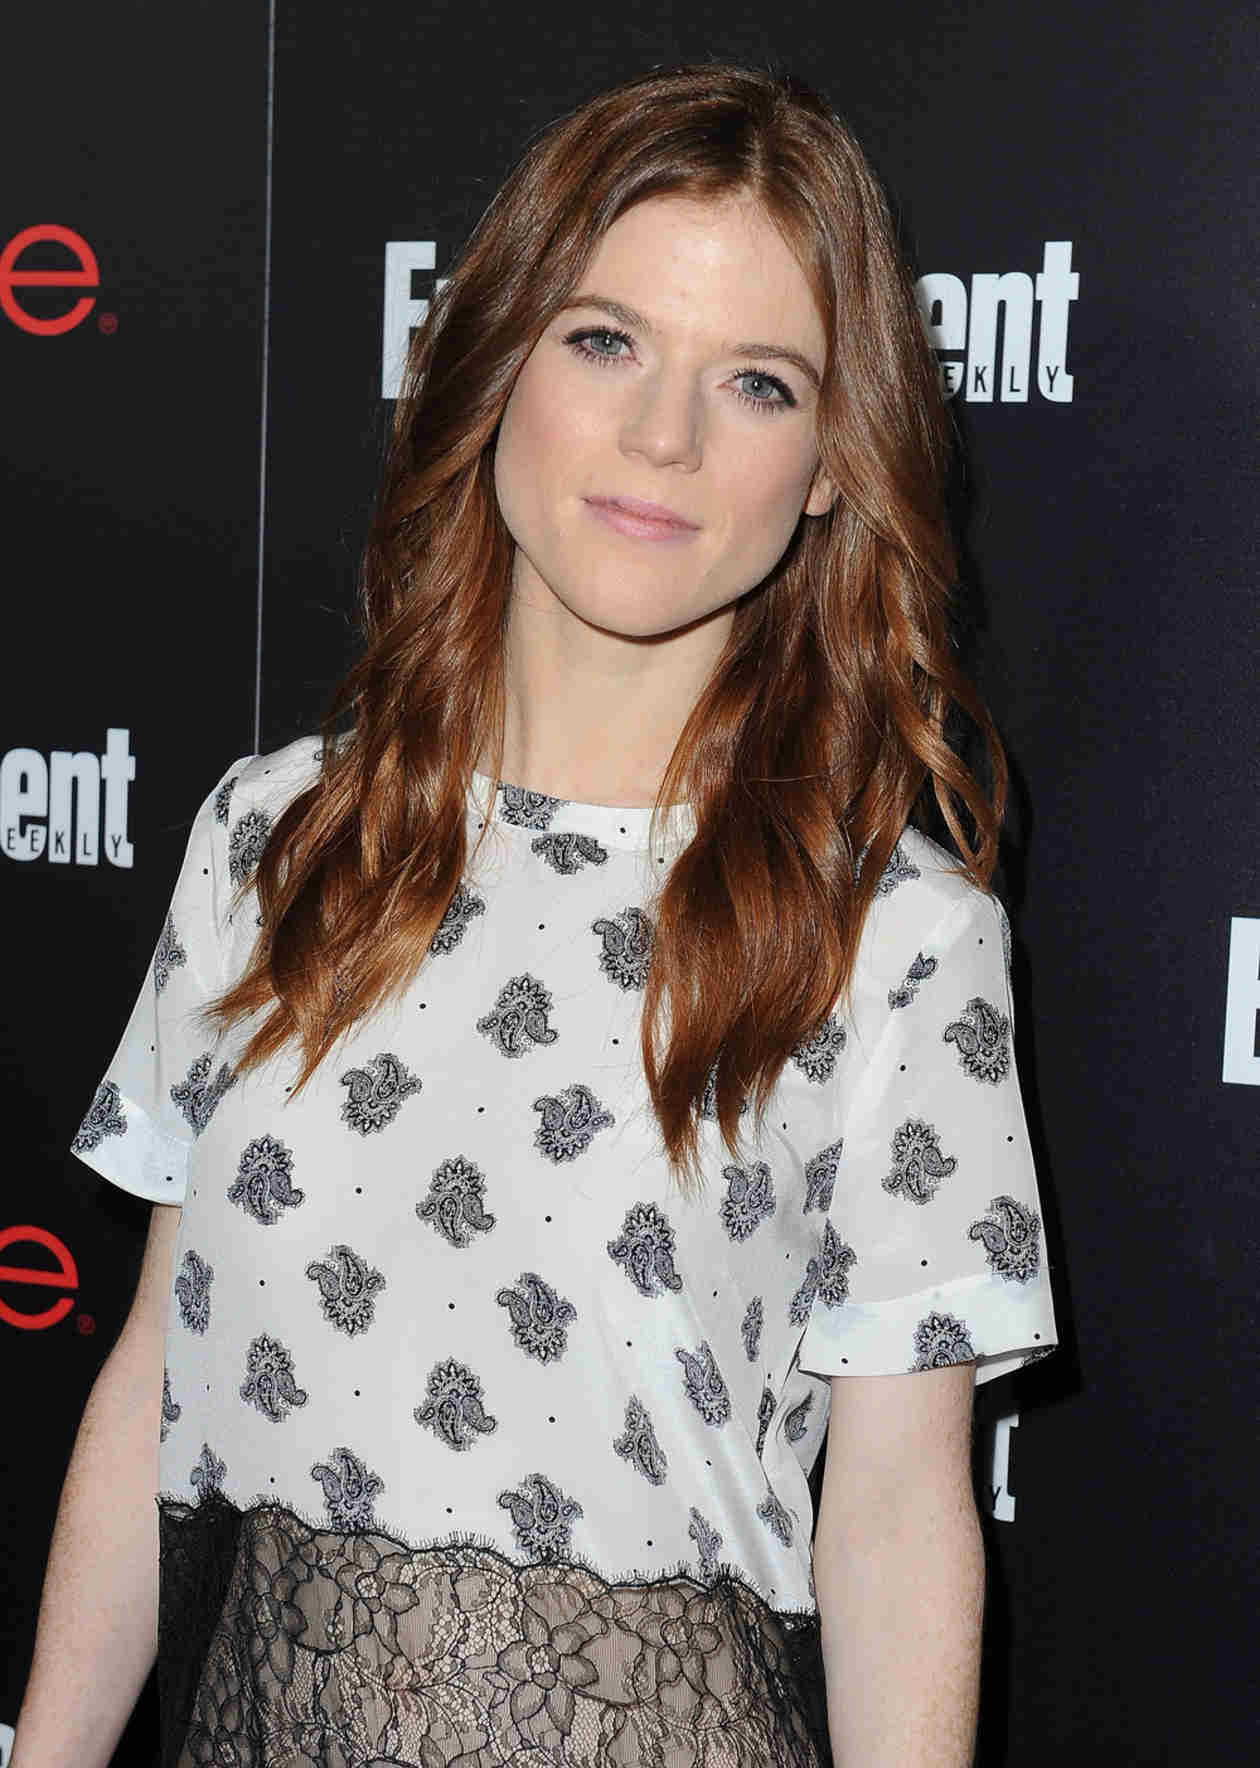 Game of Thrones Star Rose Leslie Scores Role as Vin Diesel's Love Interest